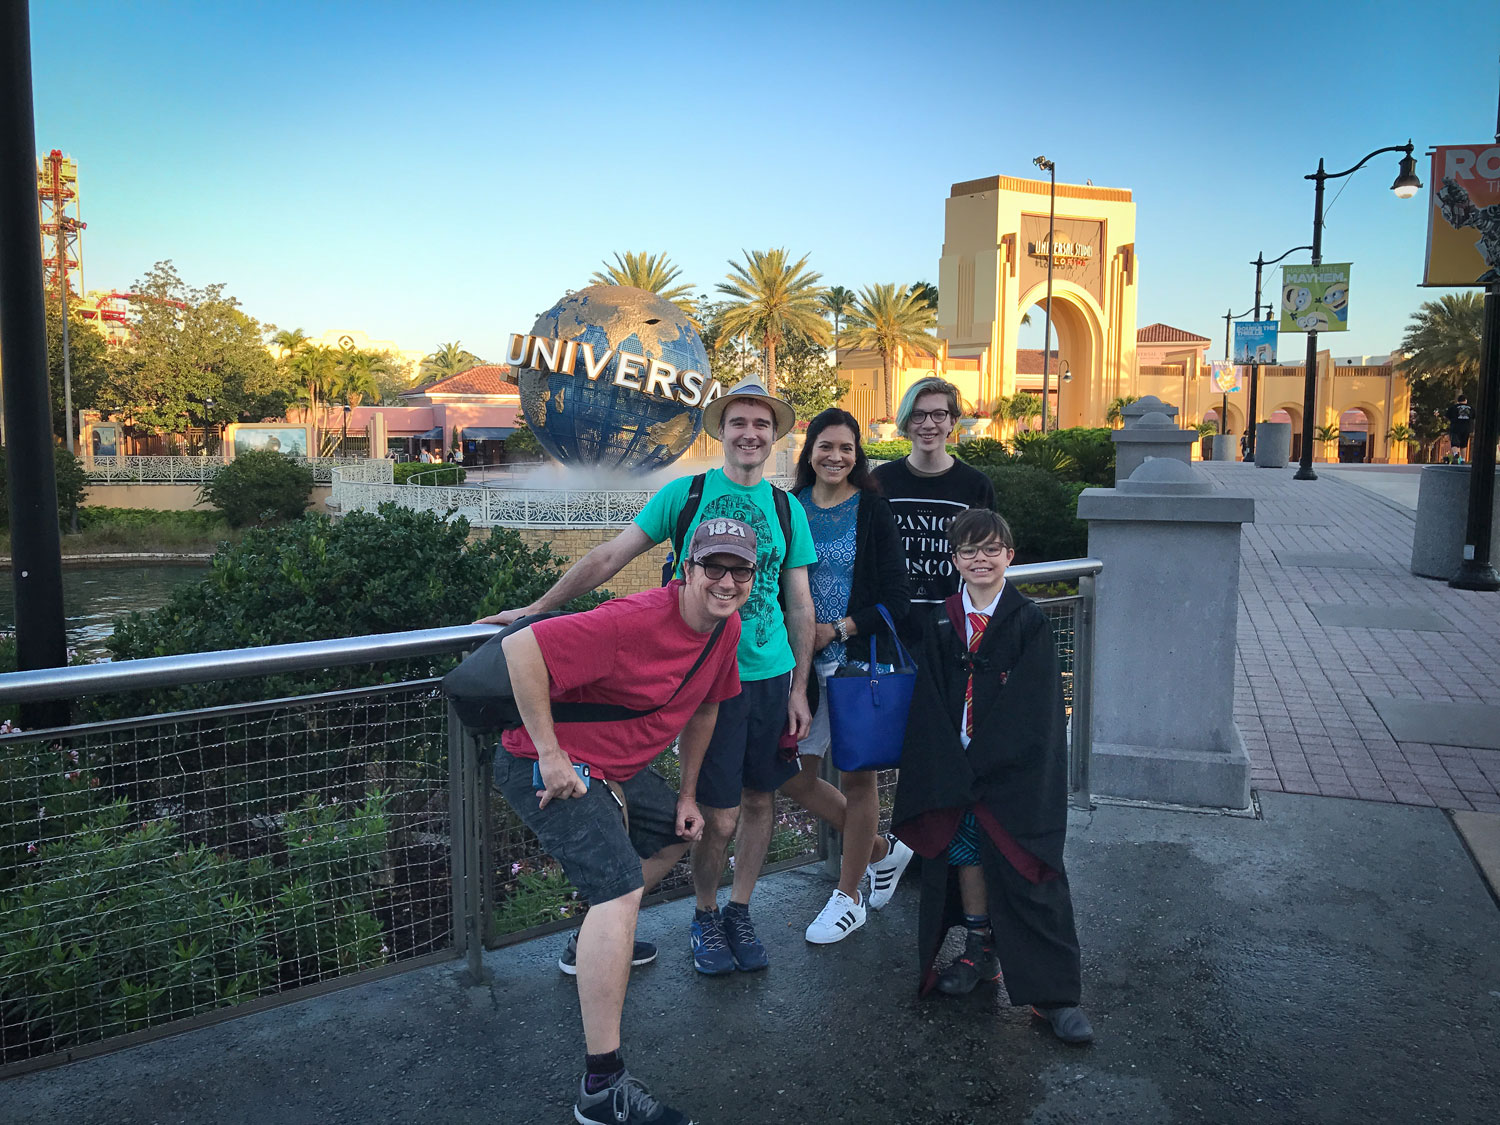 Tips for visiting Universal Studios Florida - Family Travel